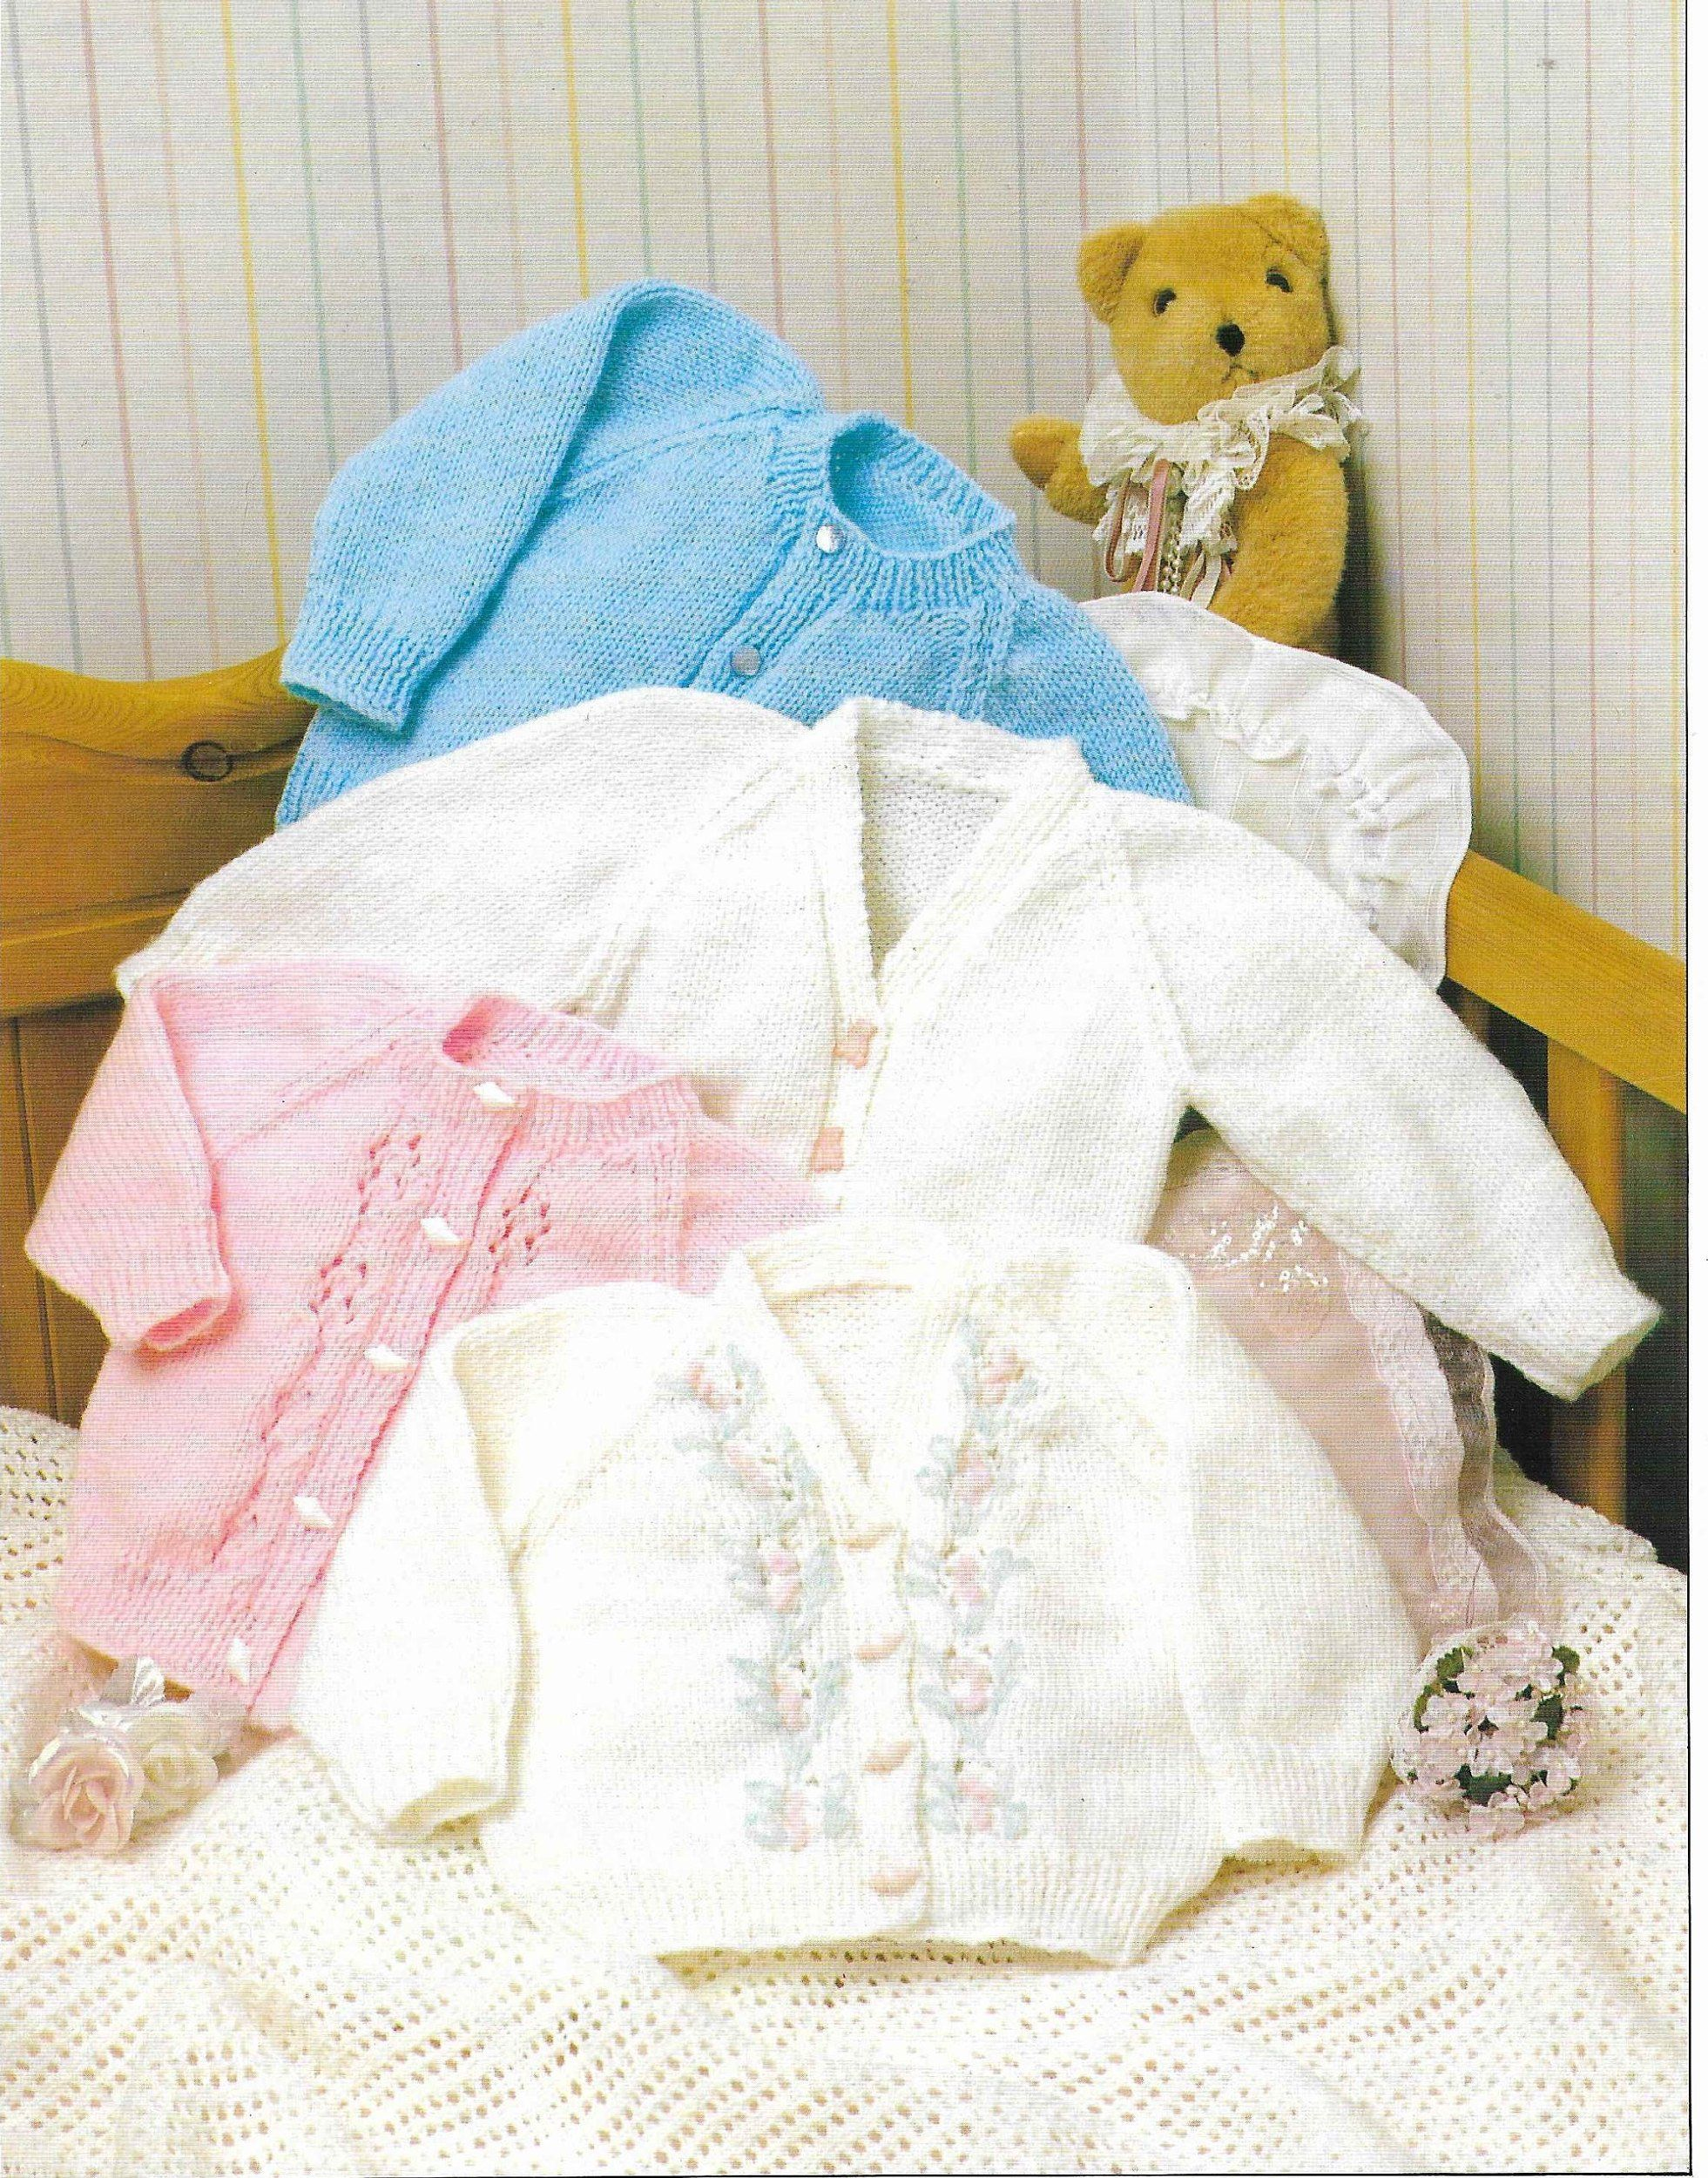 1d06353f7eb4 Baby Cardigans Knitting Pattern PDF Lace Cardigan DK Boy Girl ...